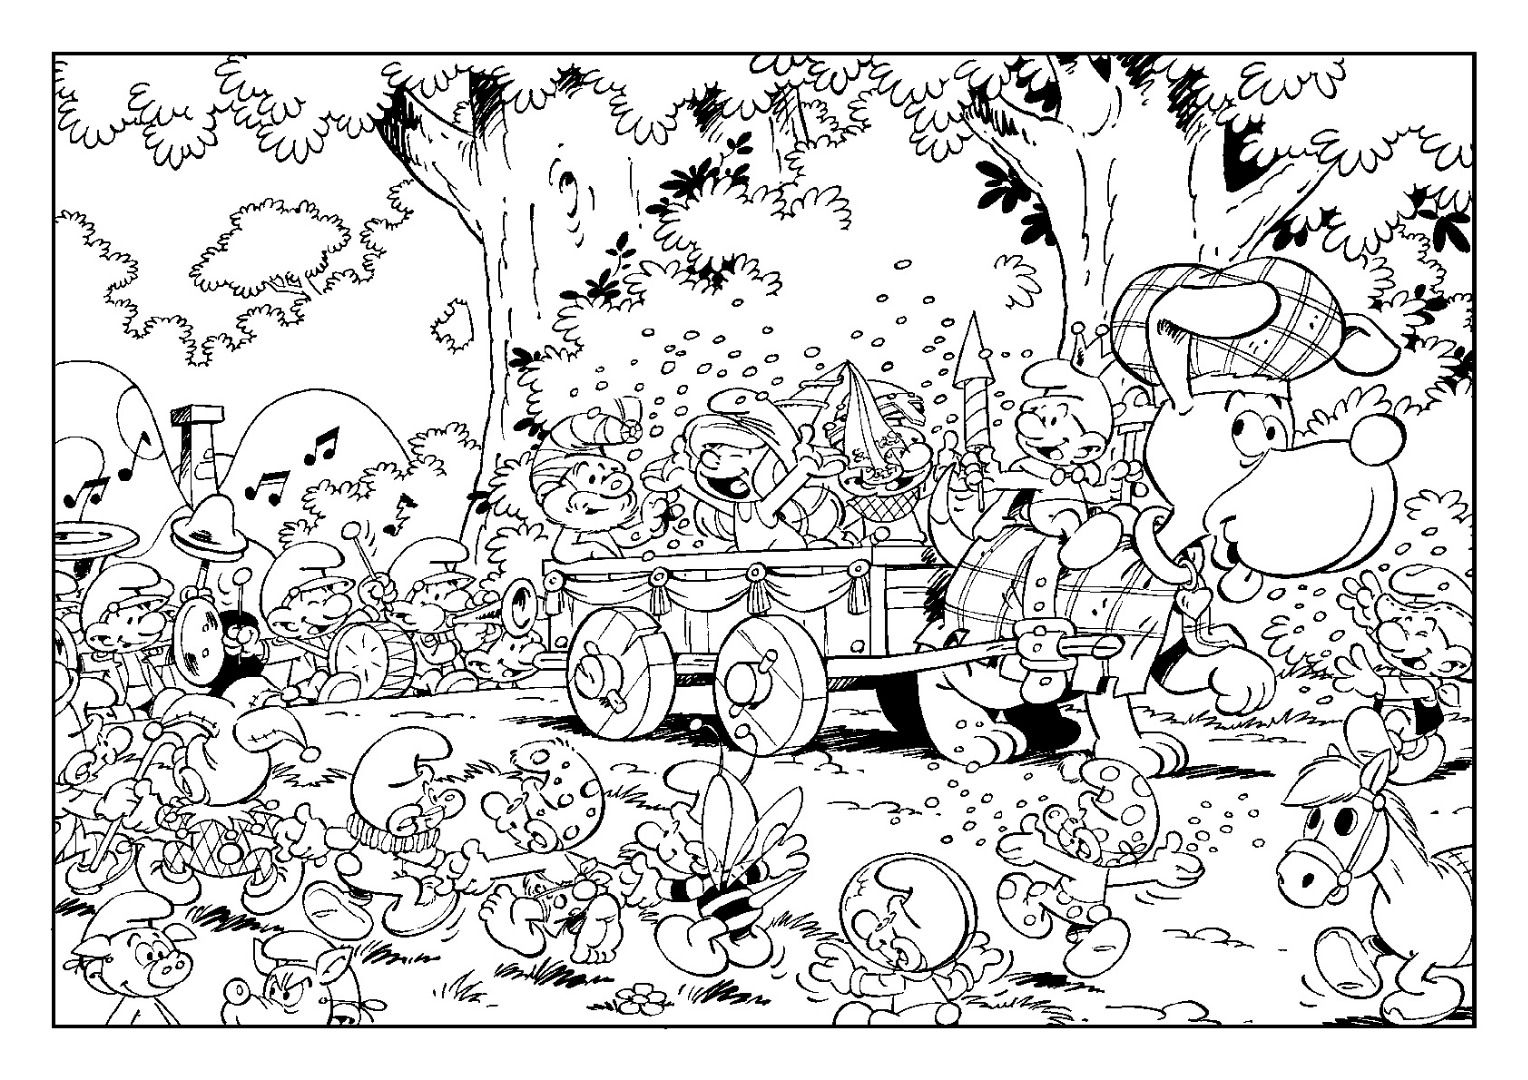 Smurf Coloring Pages Clumsy Smurf Coloring Pages Papa Smurf Coloring Pages Smurf Color Free Halloween Coloring Pages Halloween Coloring Pages Coloring Pages